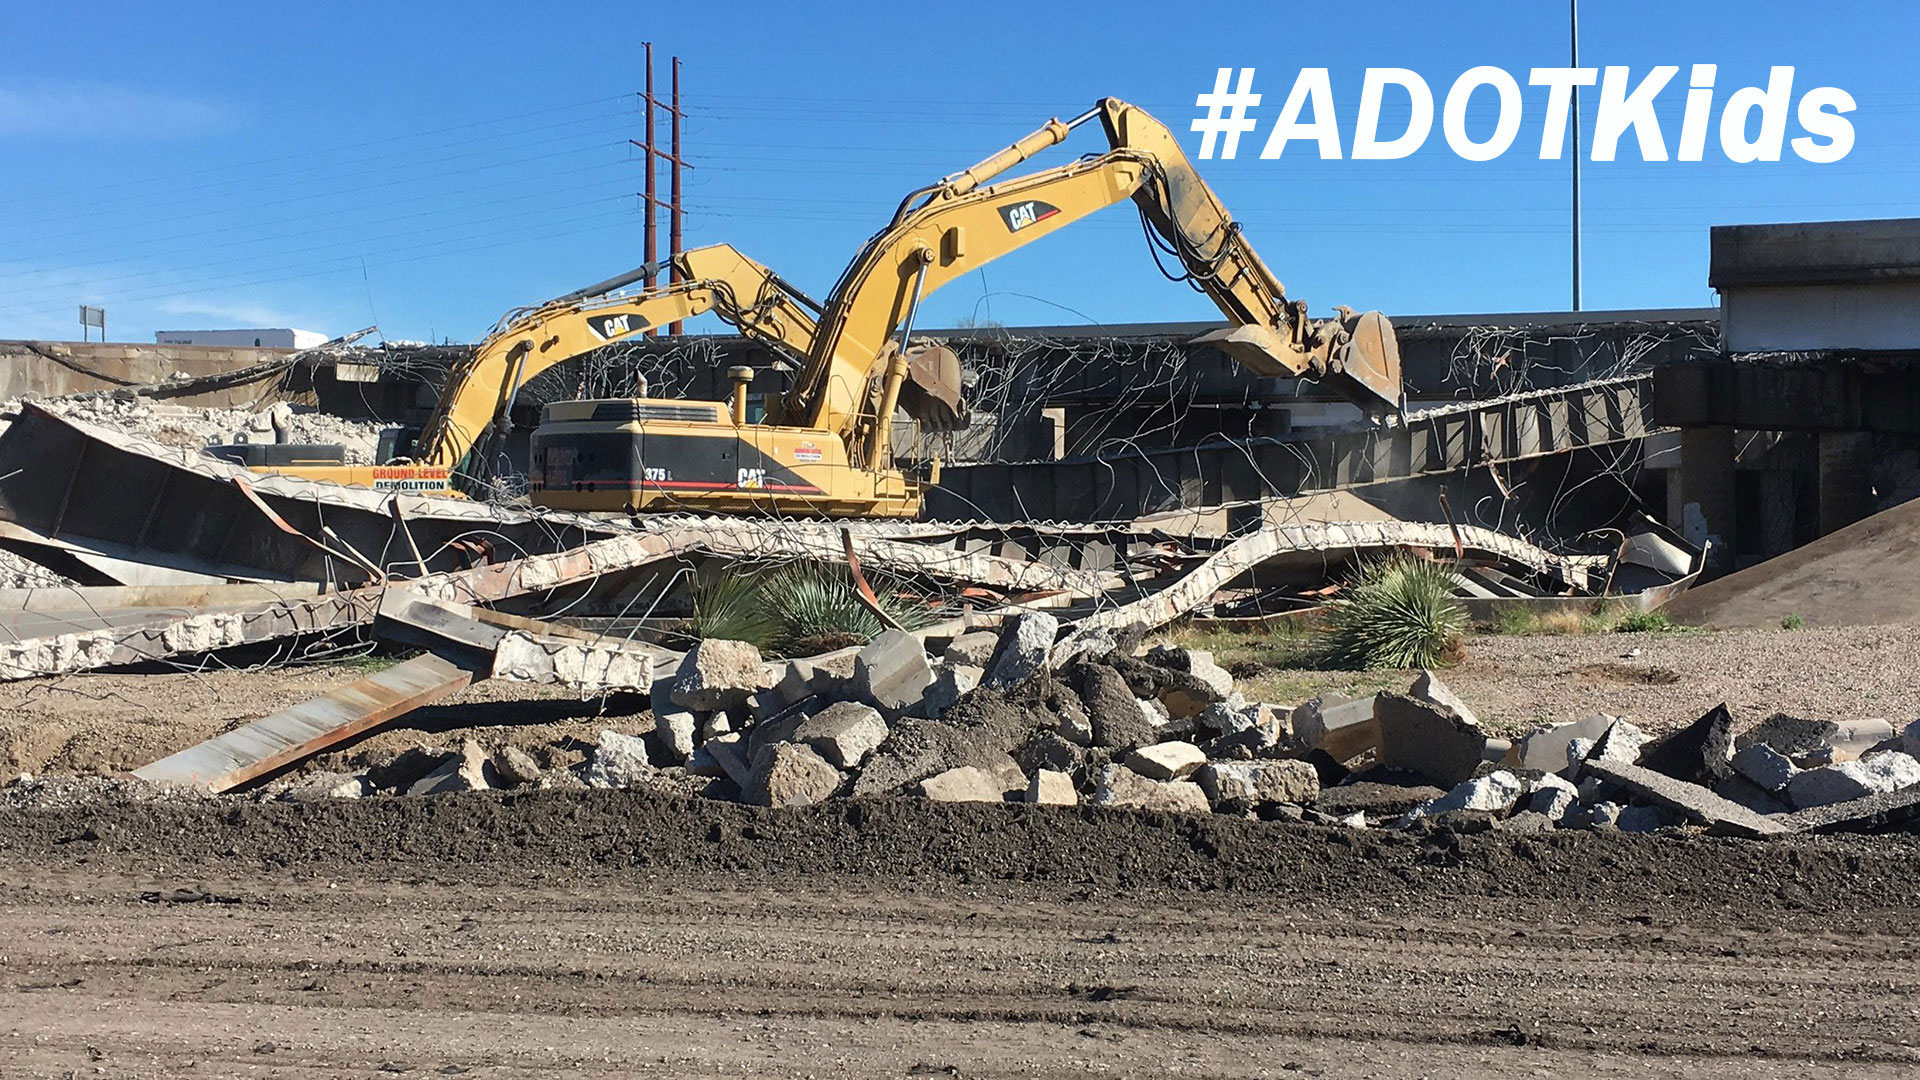 adot-kids I-10 demolition